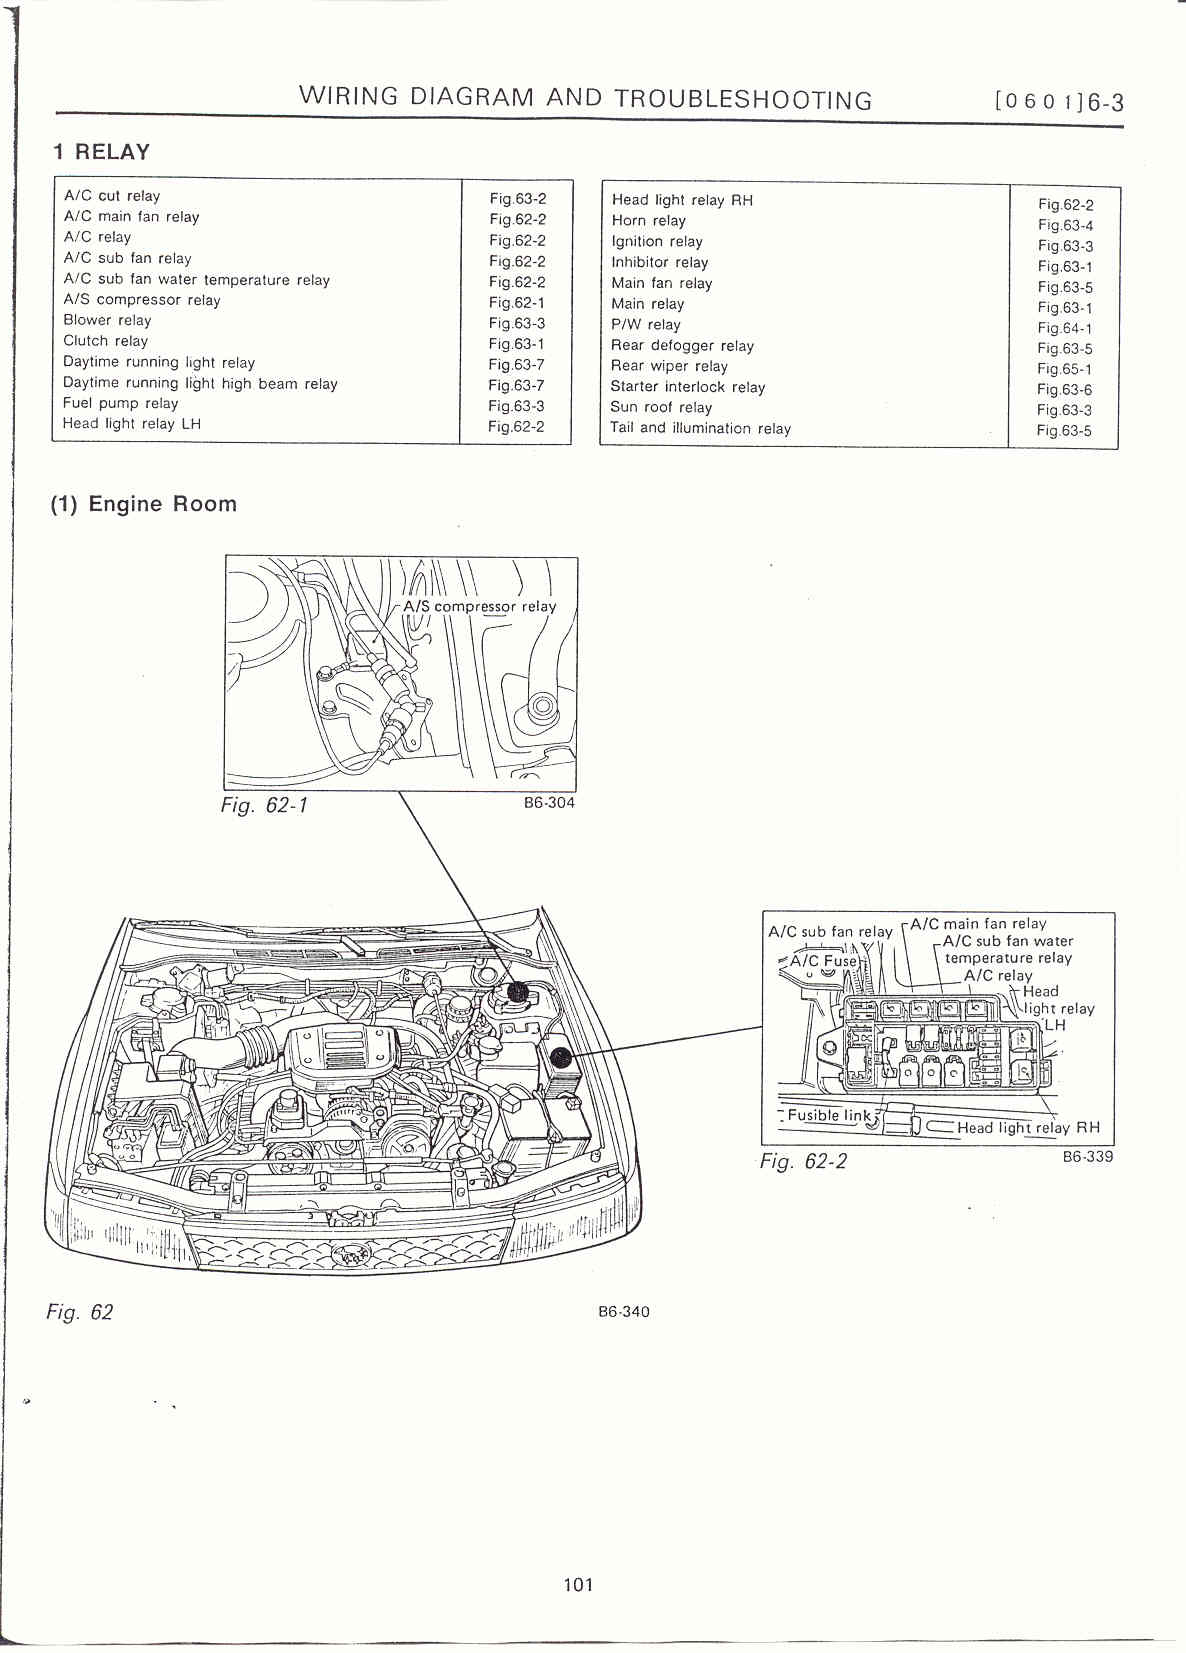 93 Subaru Impreza Fuse Box Diagram Wiring Diagrams 2006 Dodge Dakota Legacy Get Free Image About 1993